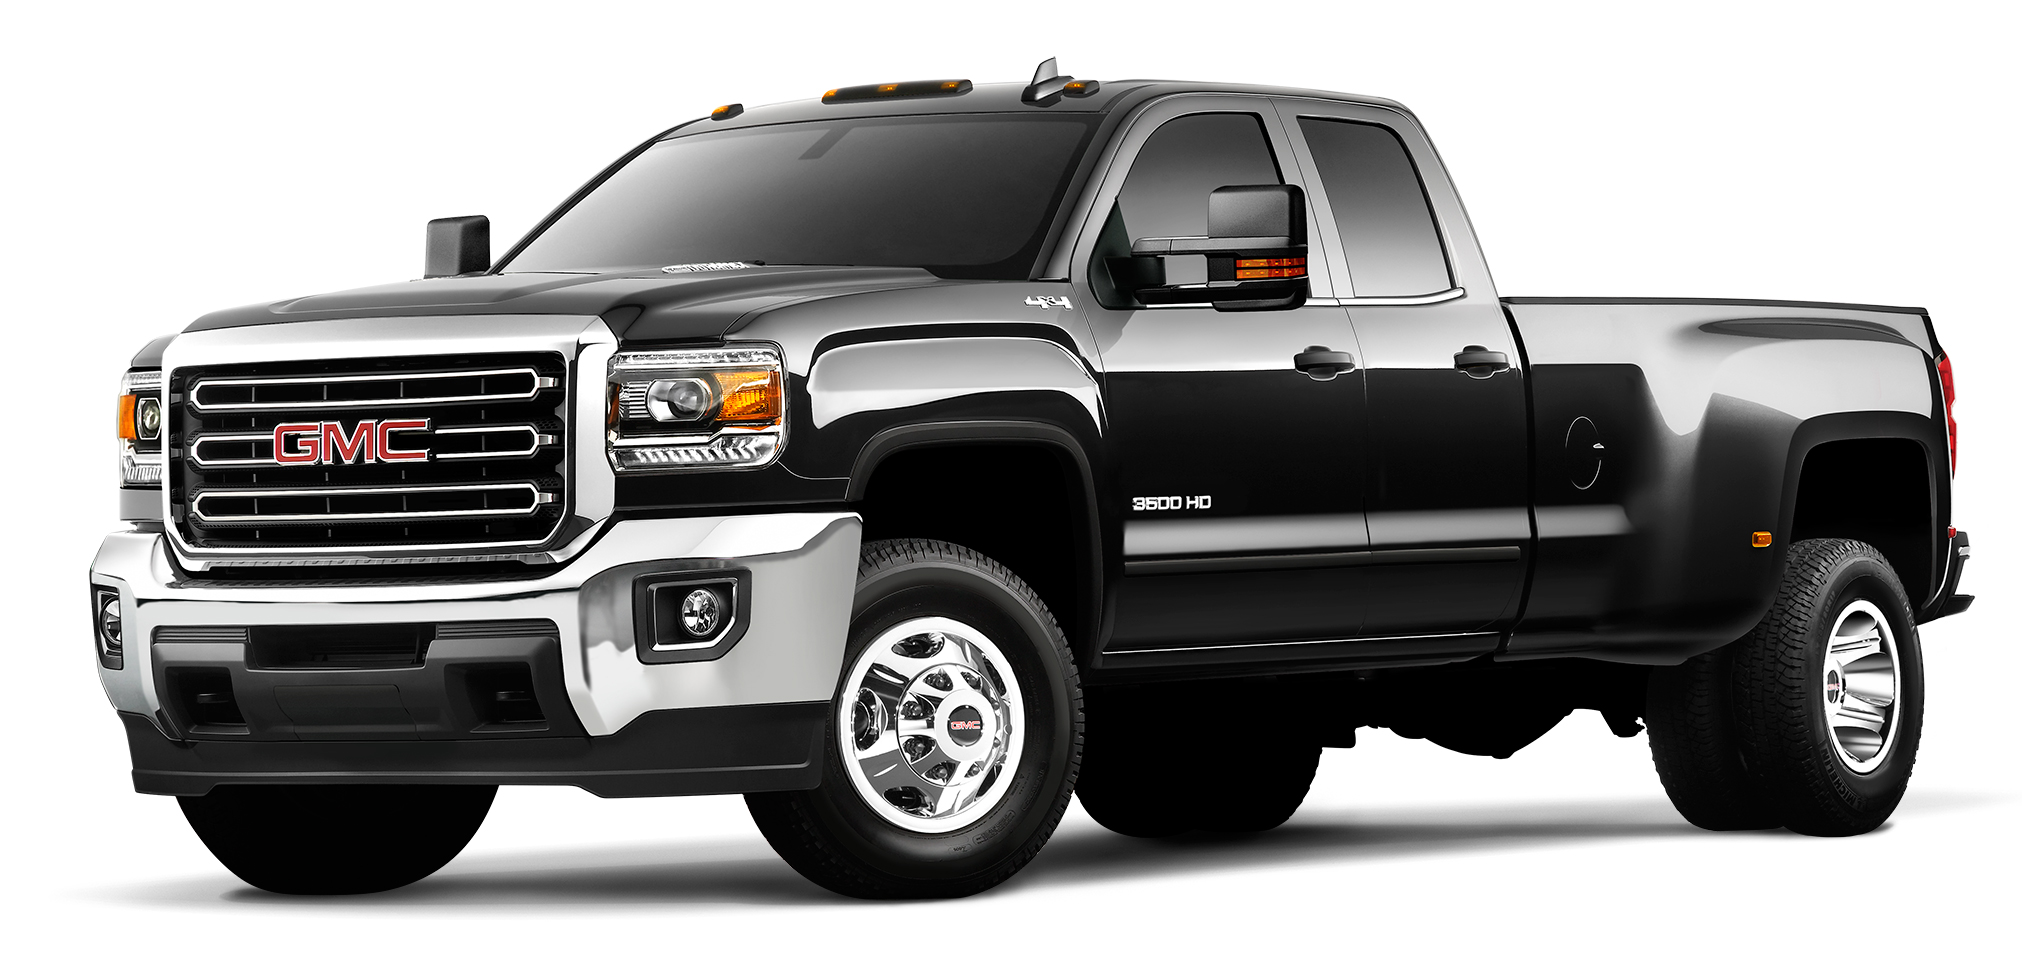 GMC Sierra 3500 HD Black